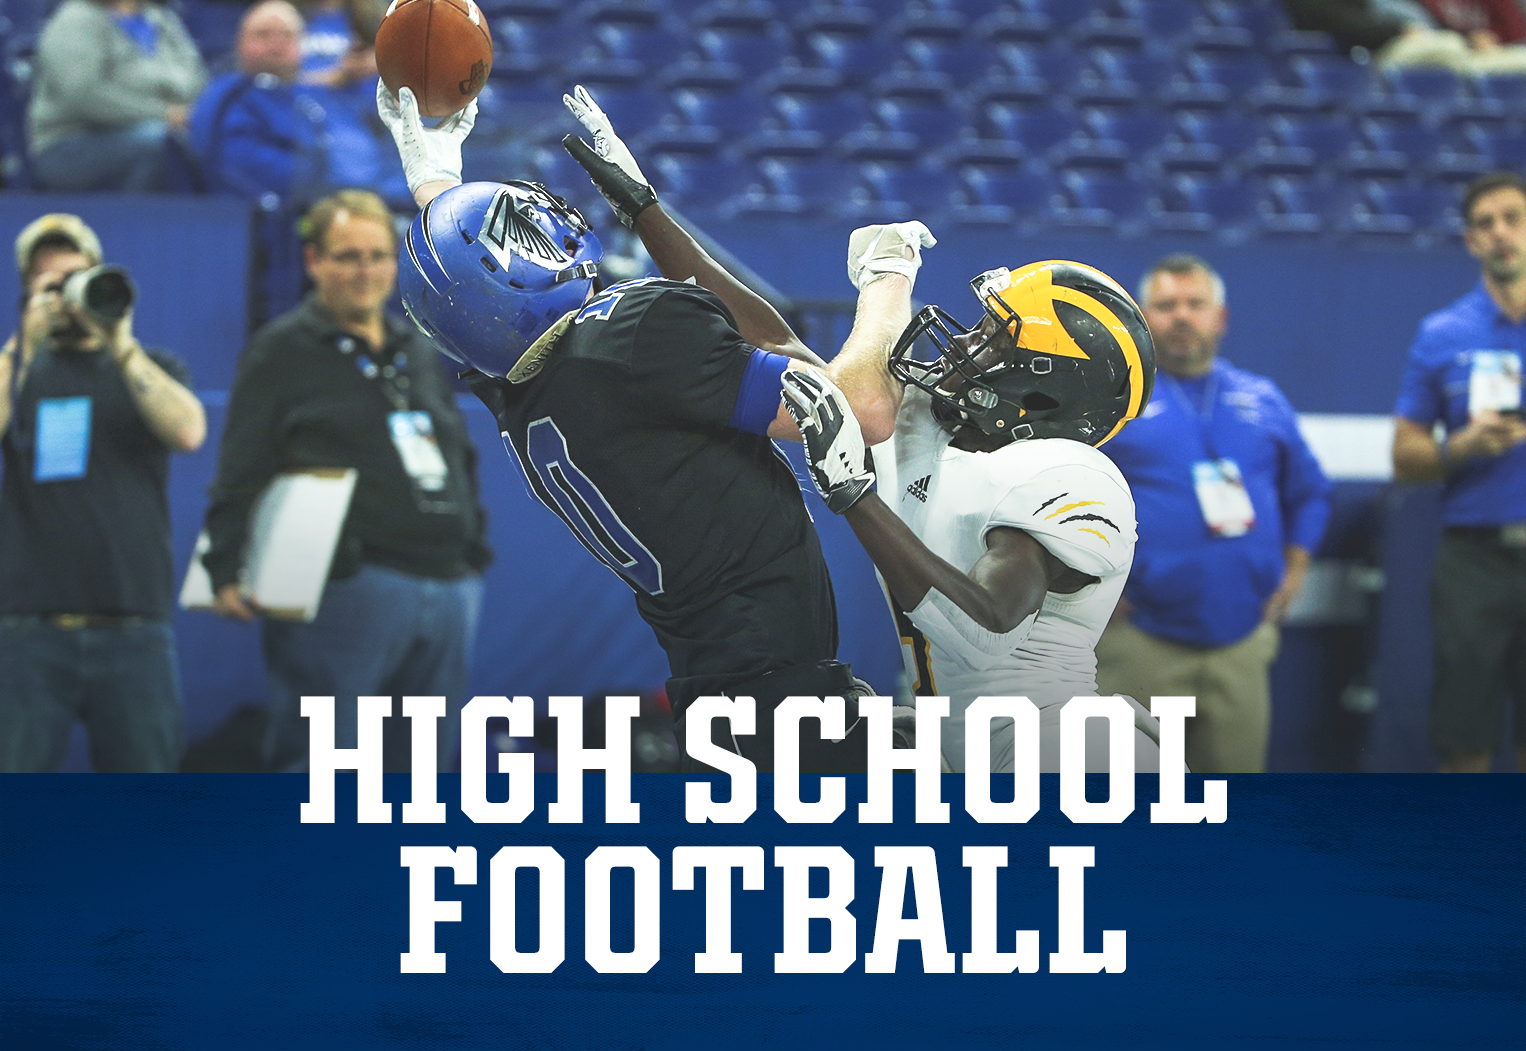 Indianapolis Colts High School Football